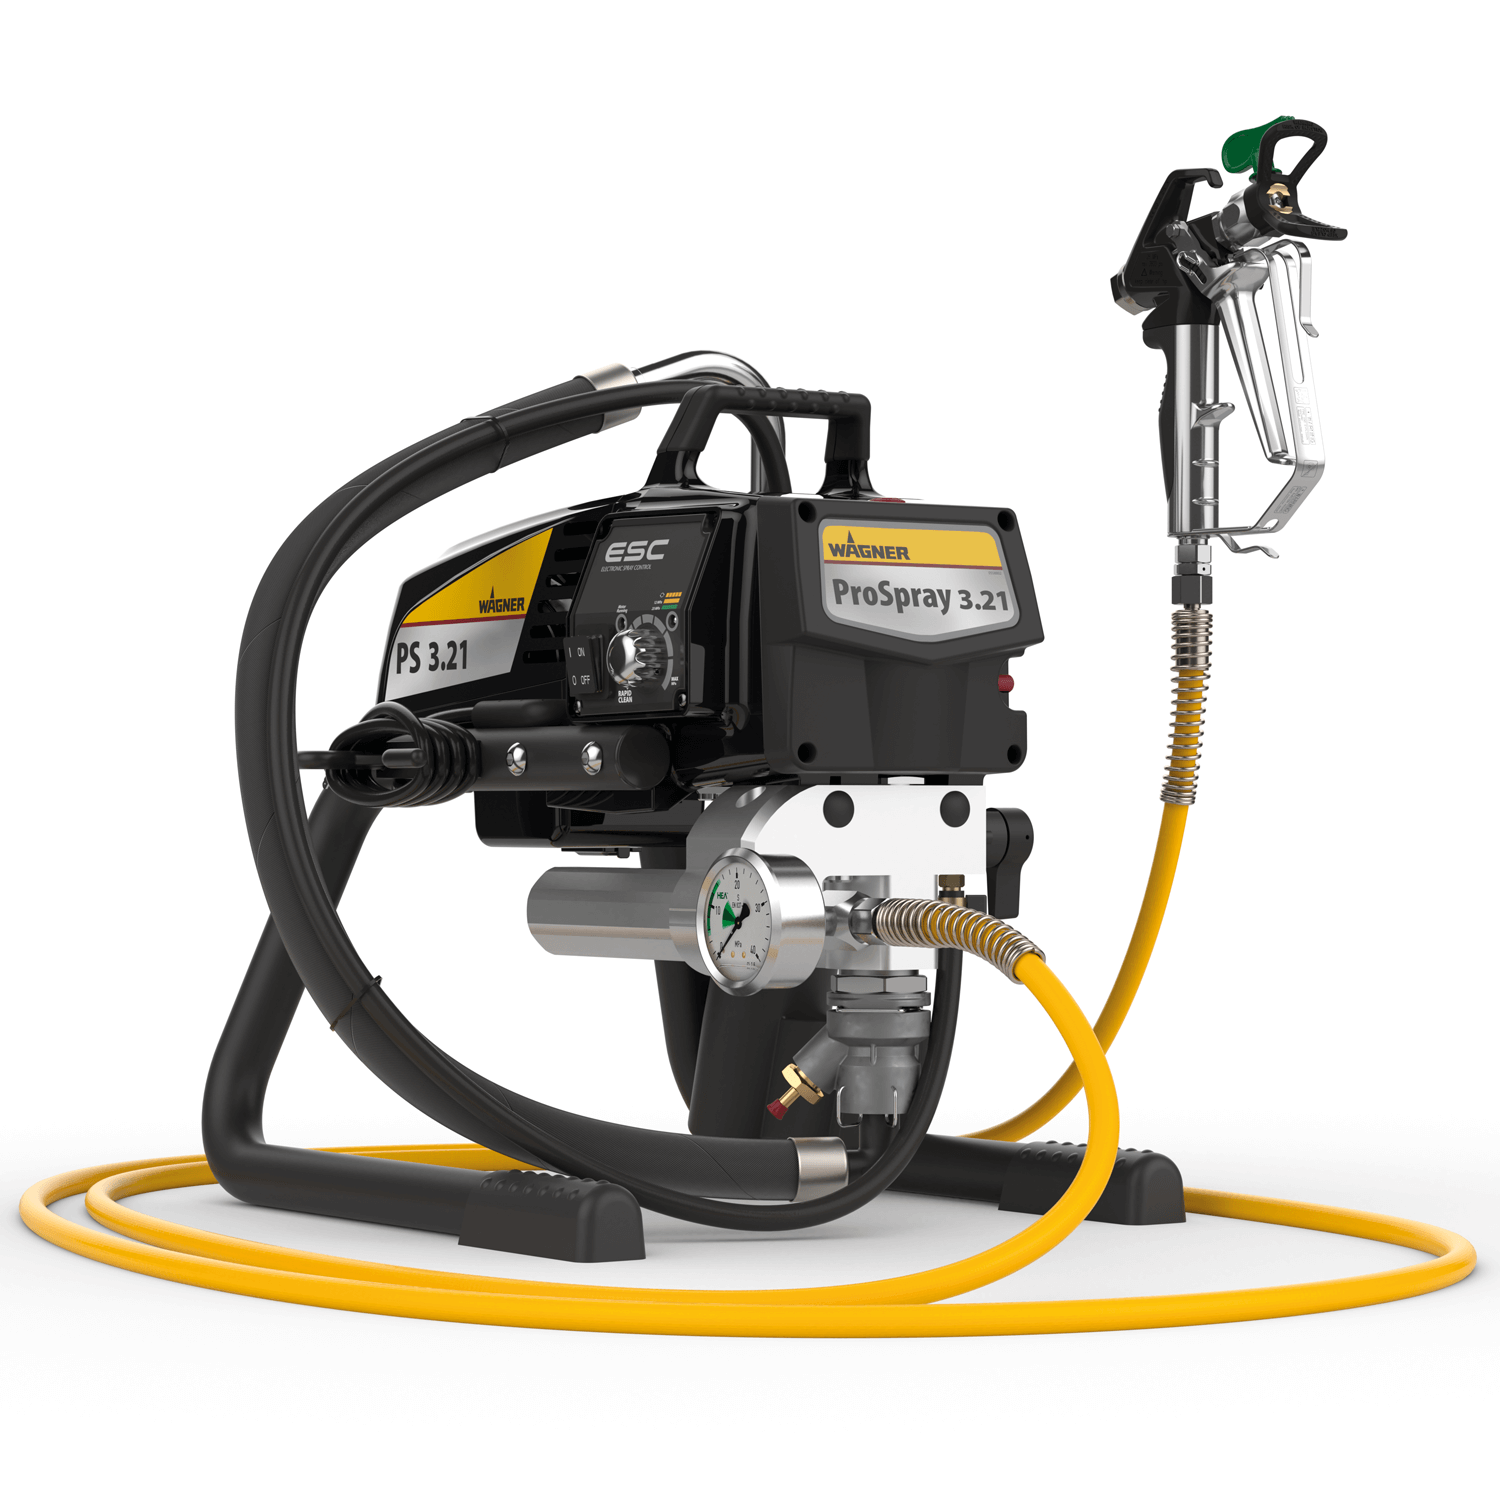 "Pro Spray 3.21 HEA Skid, debit material 2 l/min, duza max. 0,023"", motor electric 1,03 kW"